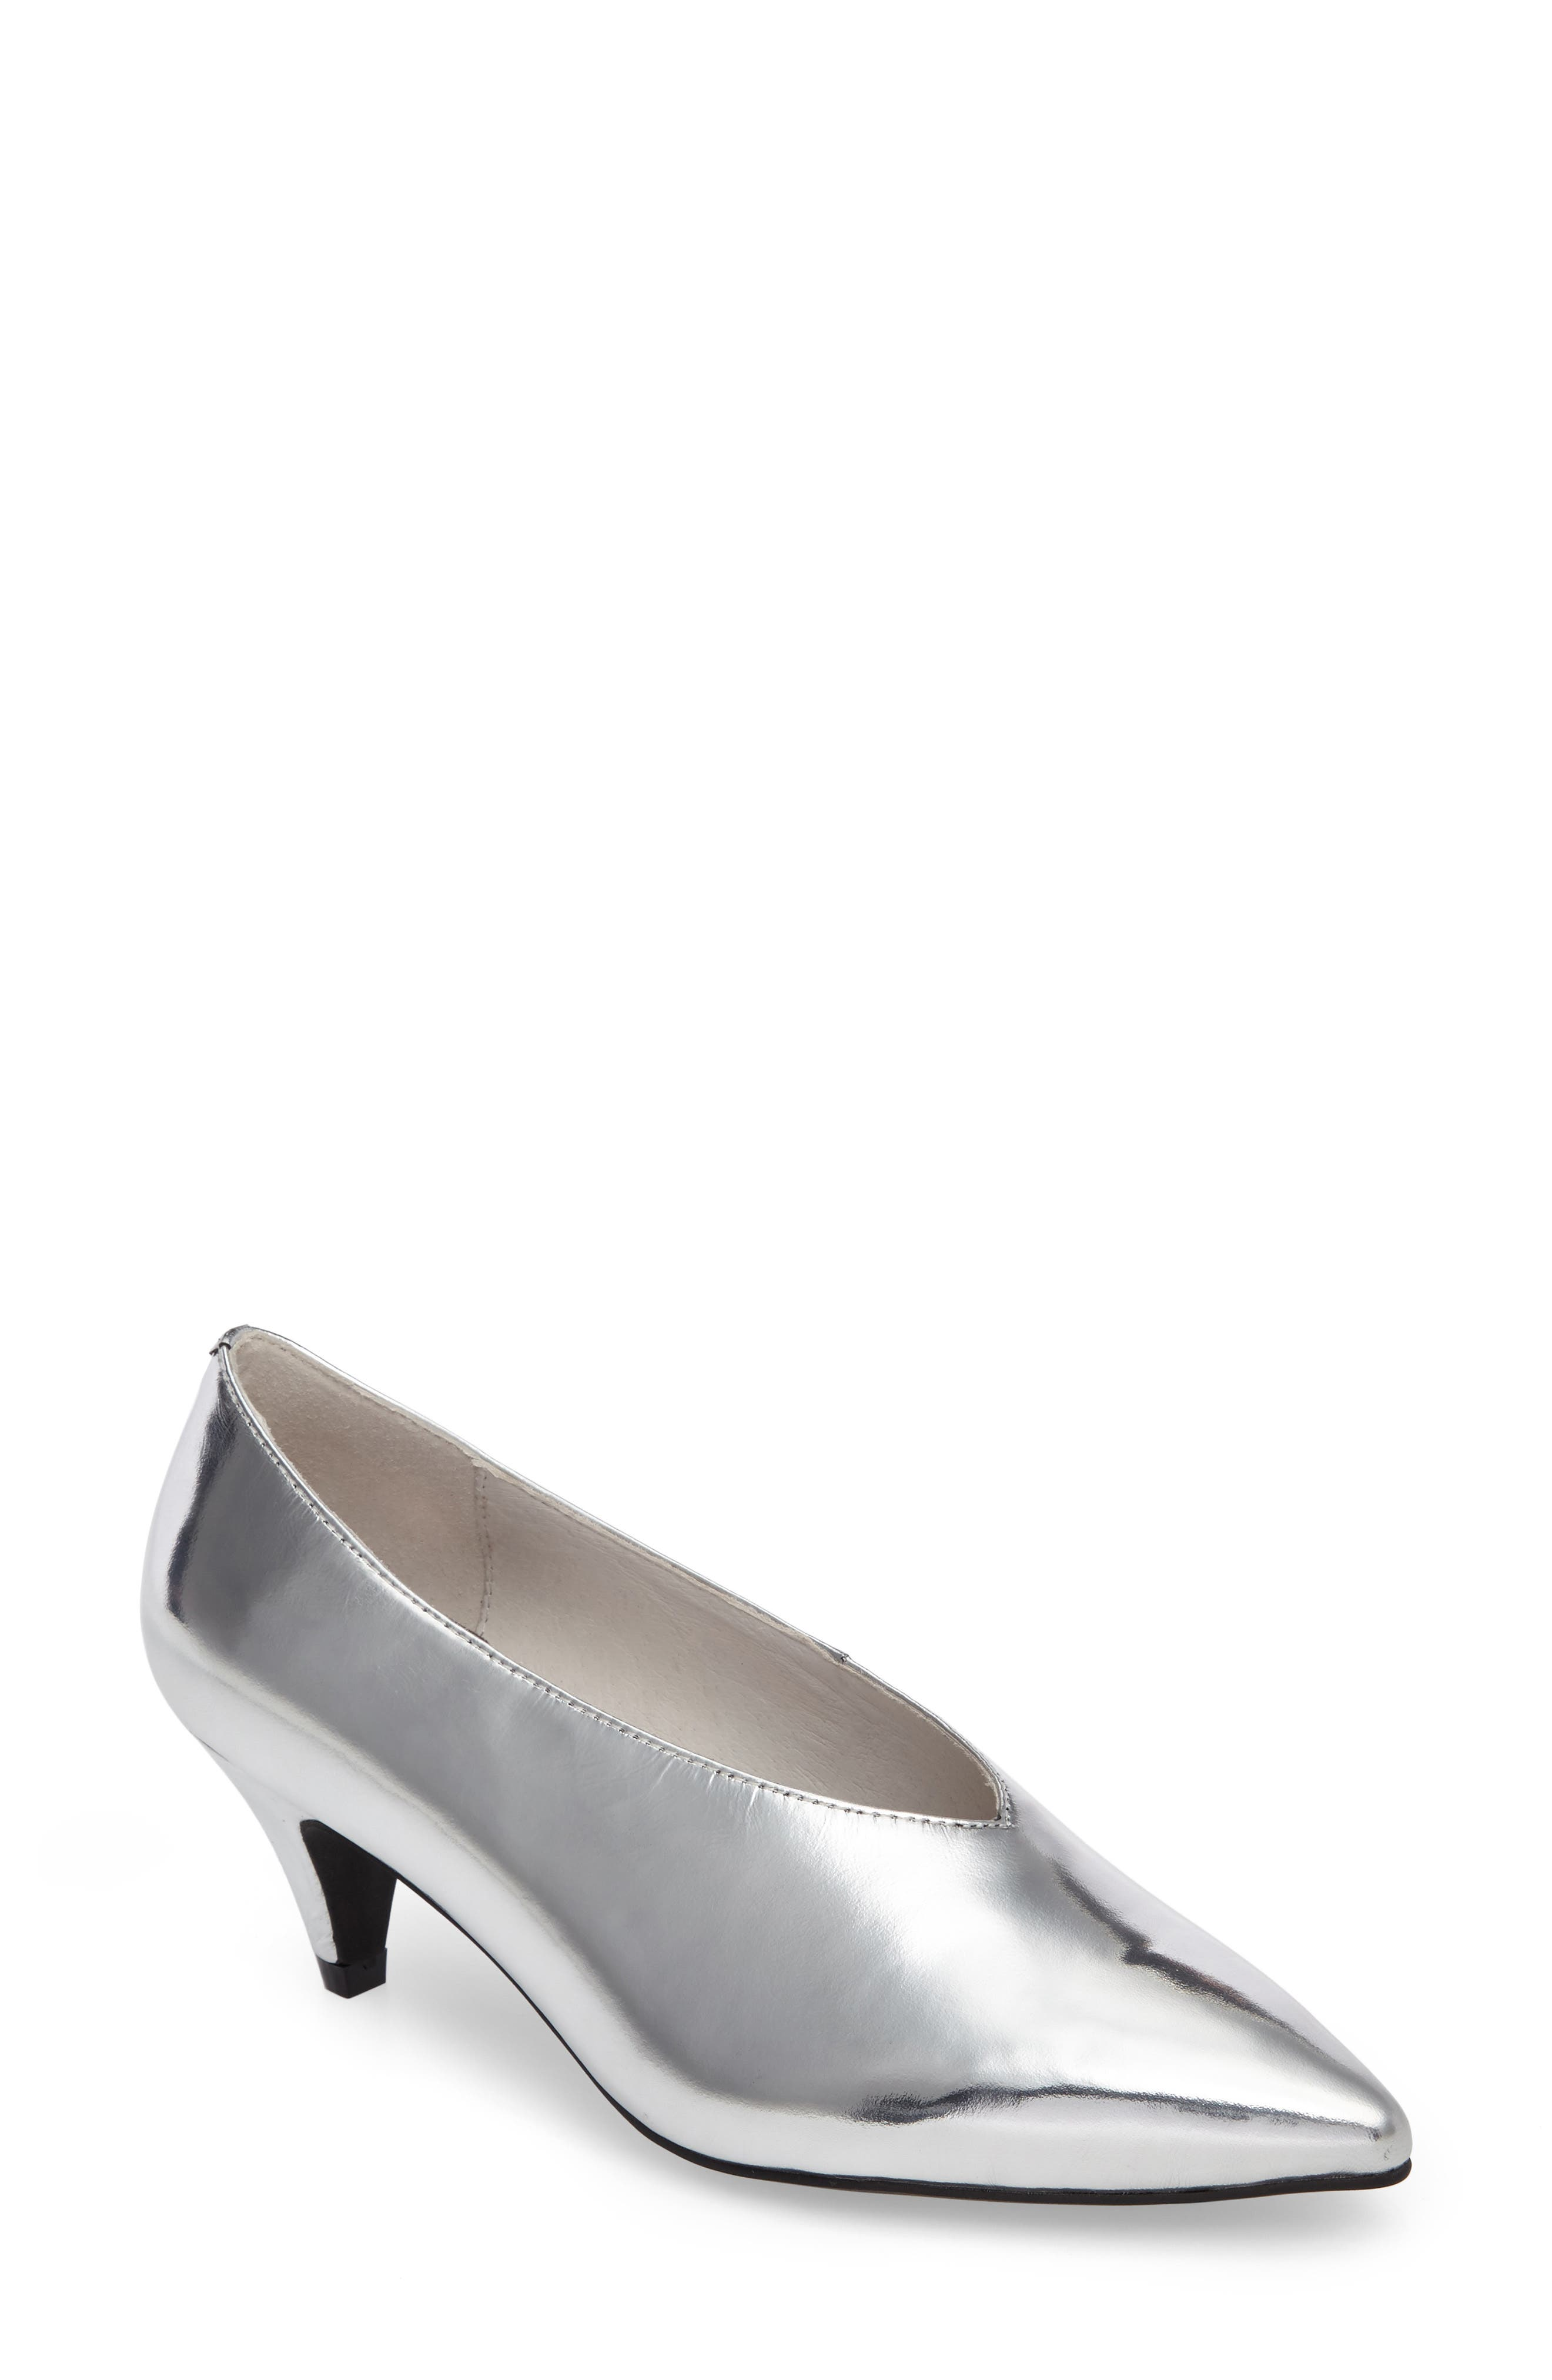 Main Image - Jeffrey Campbell 'Carla' Pointy Toe Pump (Women)